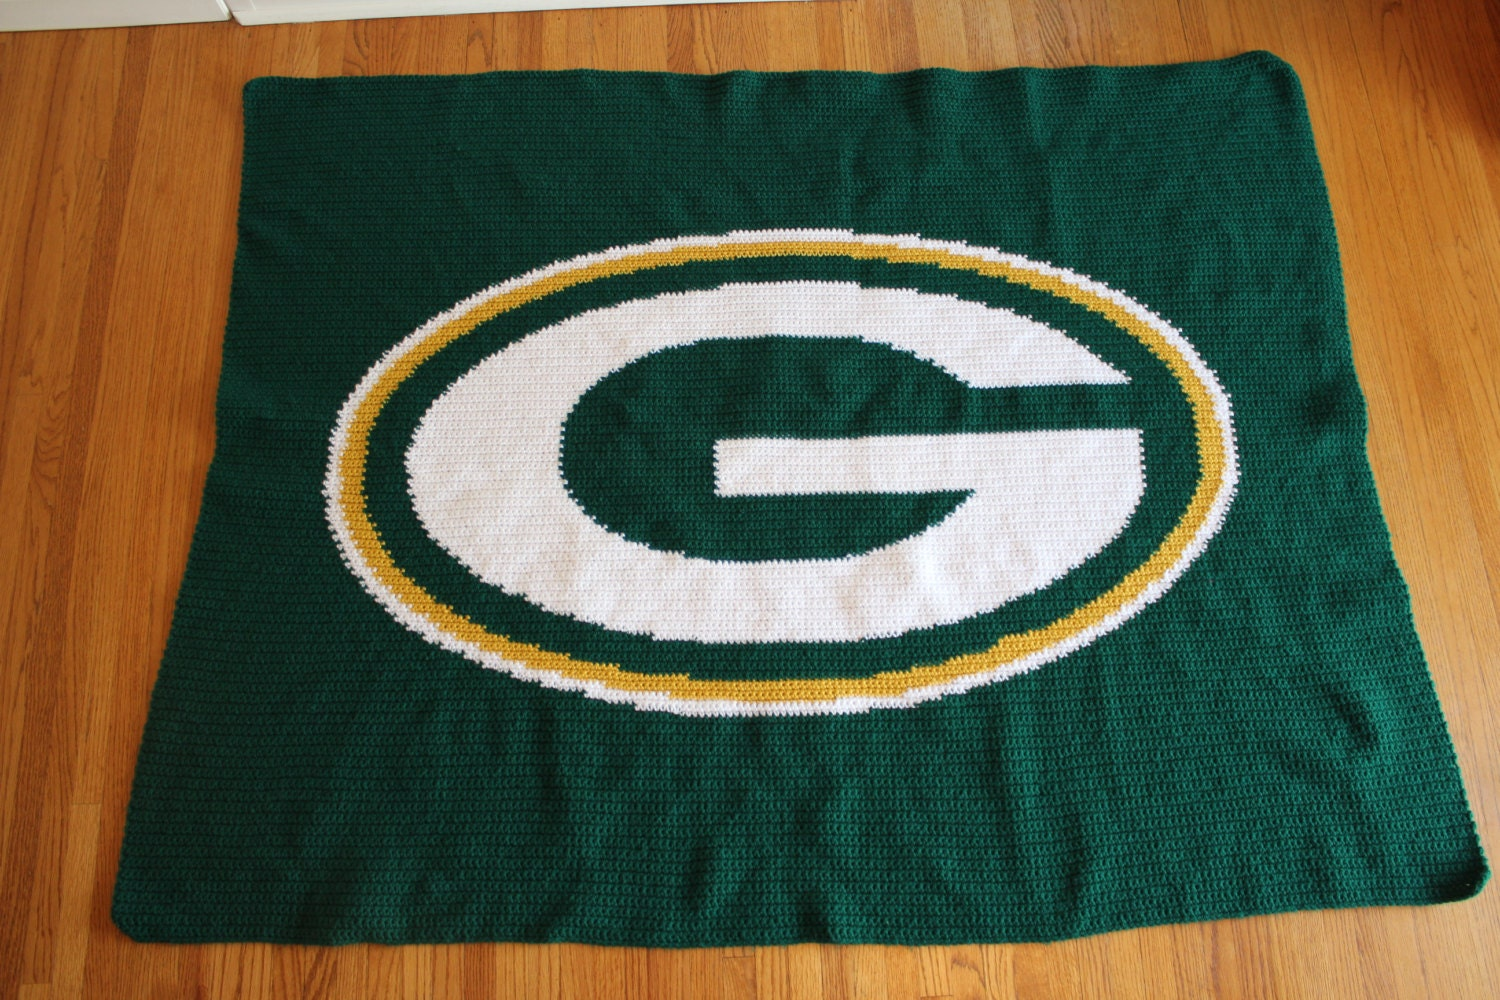 Crochet Pattern Green Bay Packer Afghan : Green Bay Packers Crochet Afghan Blanket by ...